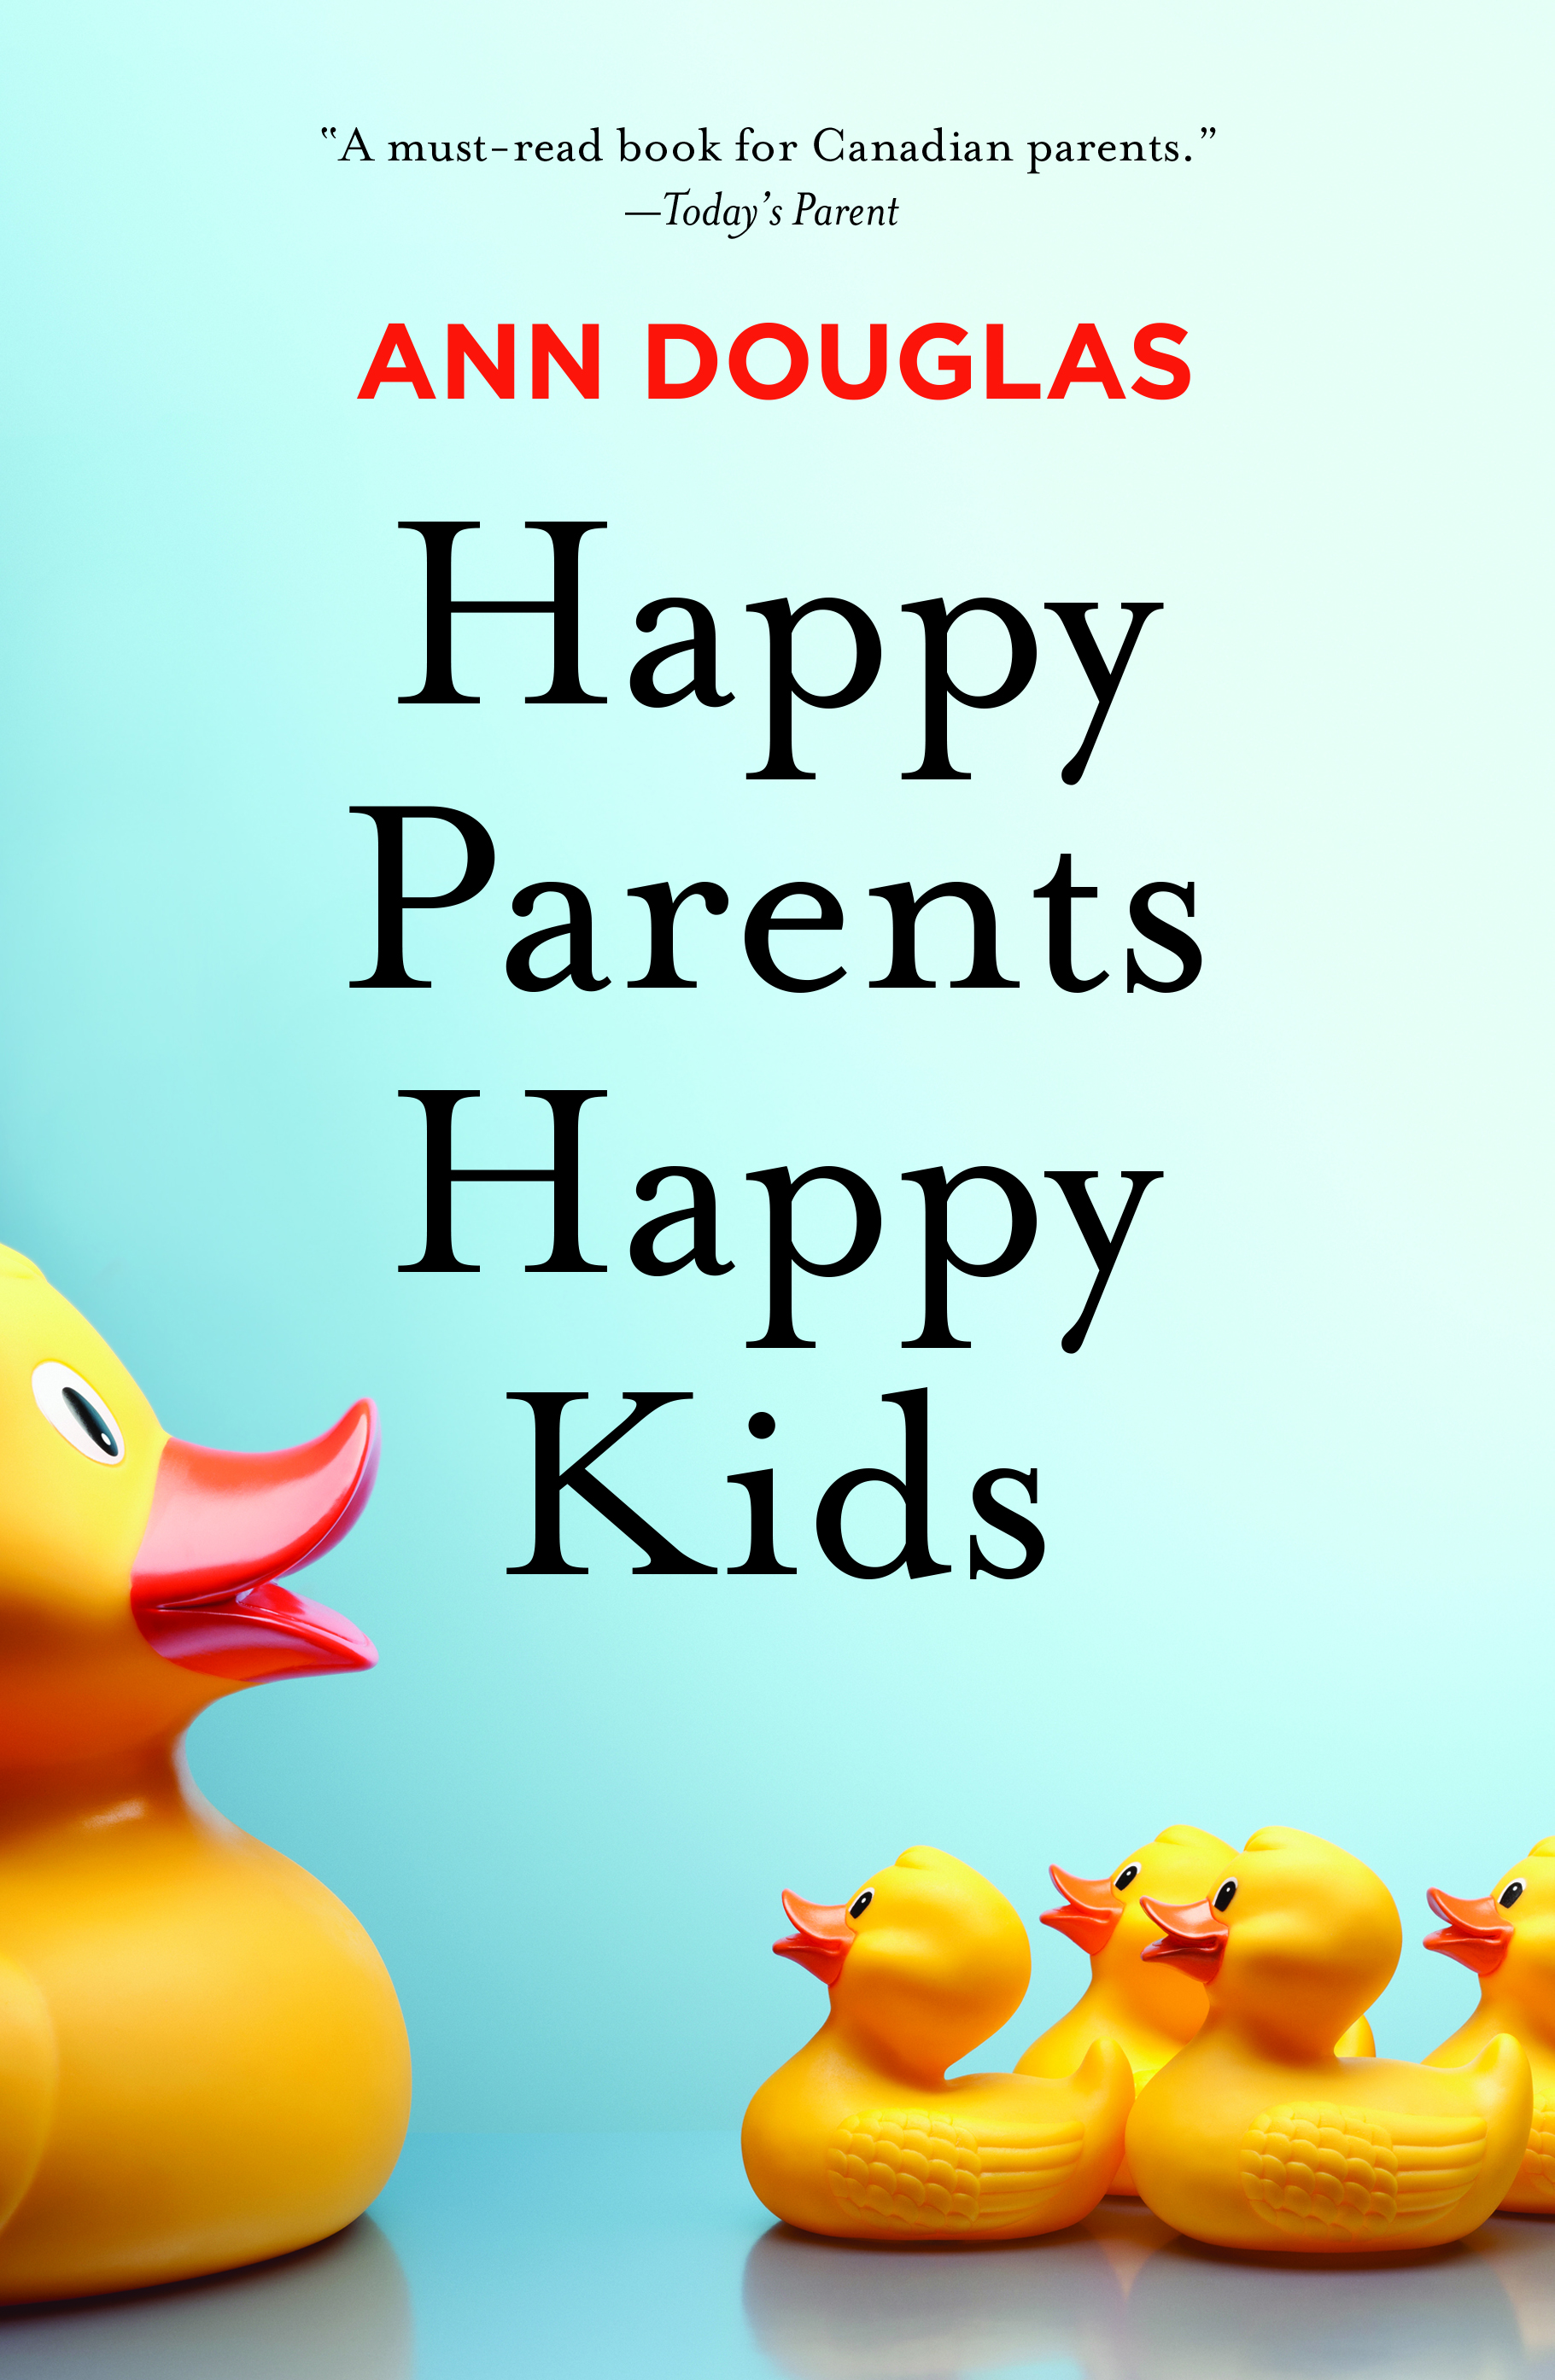 HappyParentsHappyKids copy.jpg